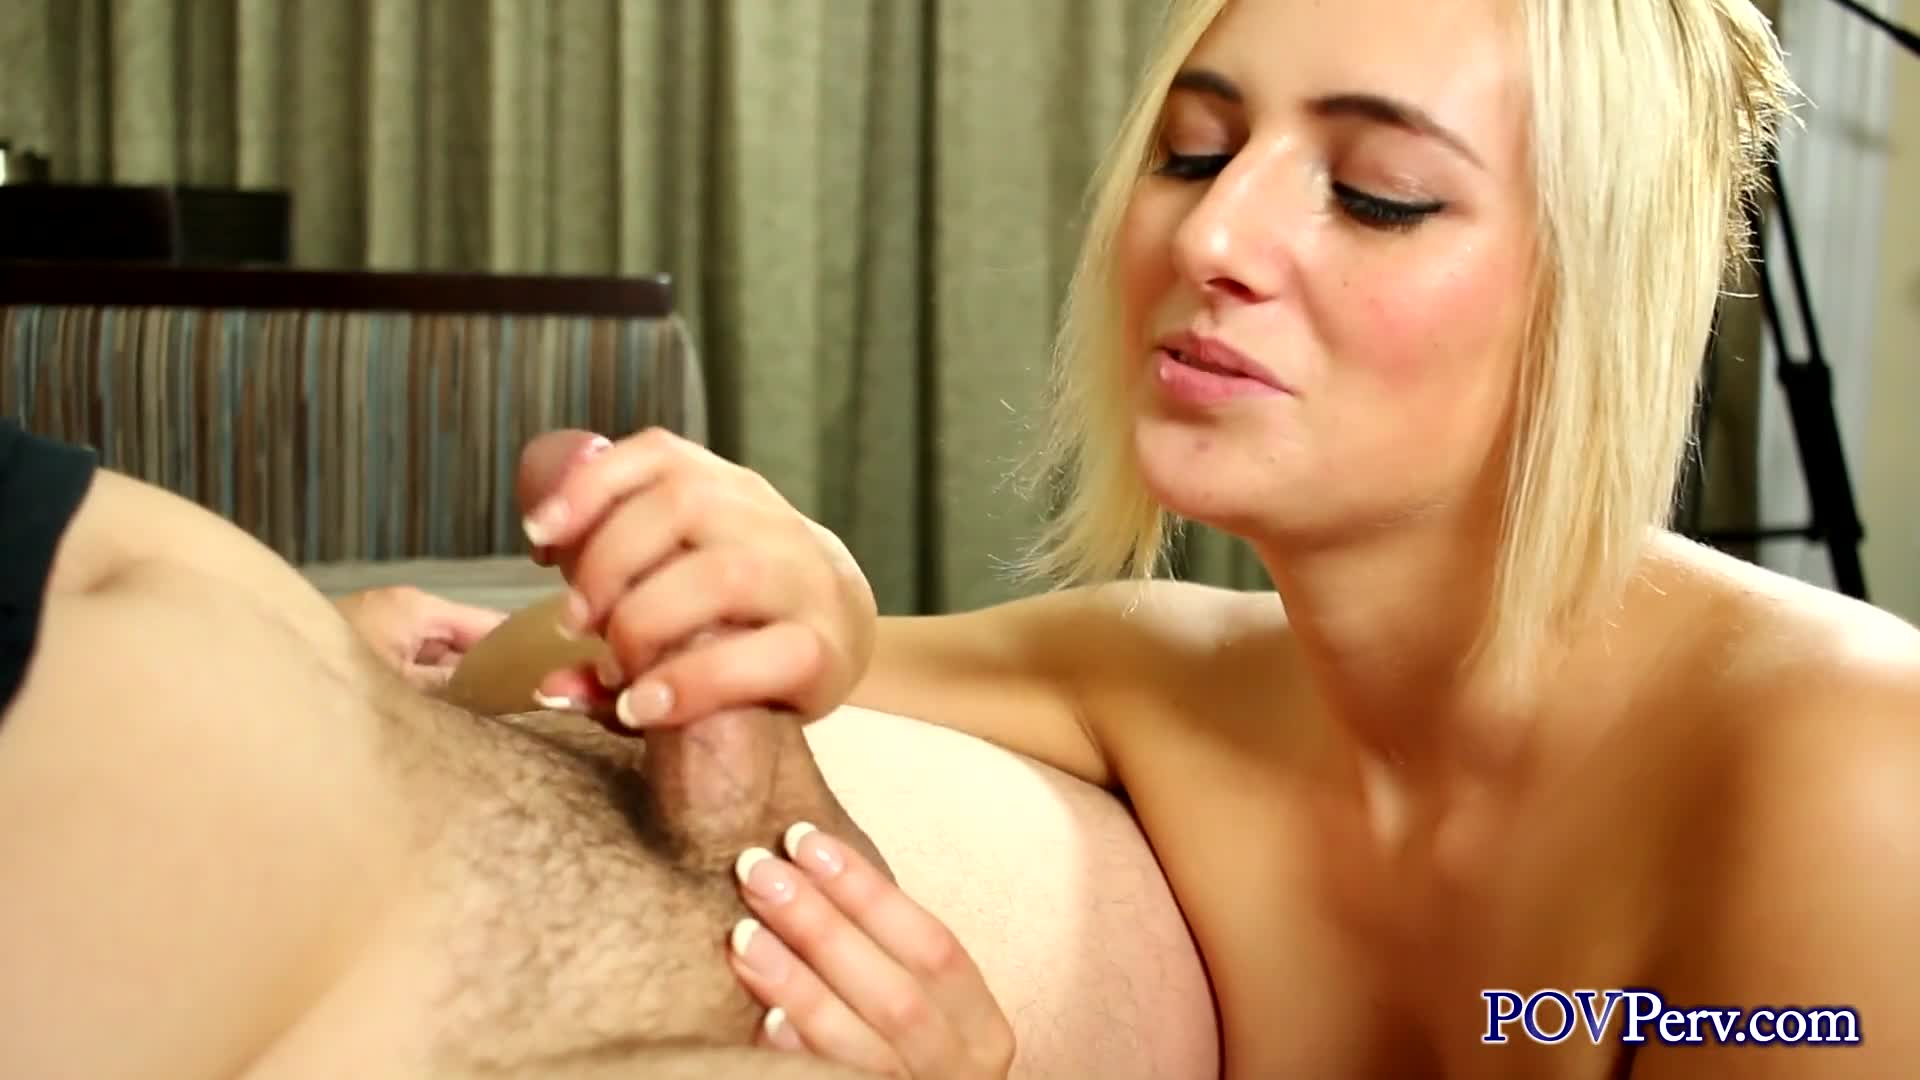 Anal and dp sex videos